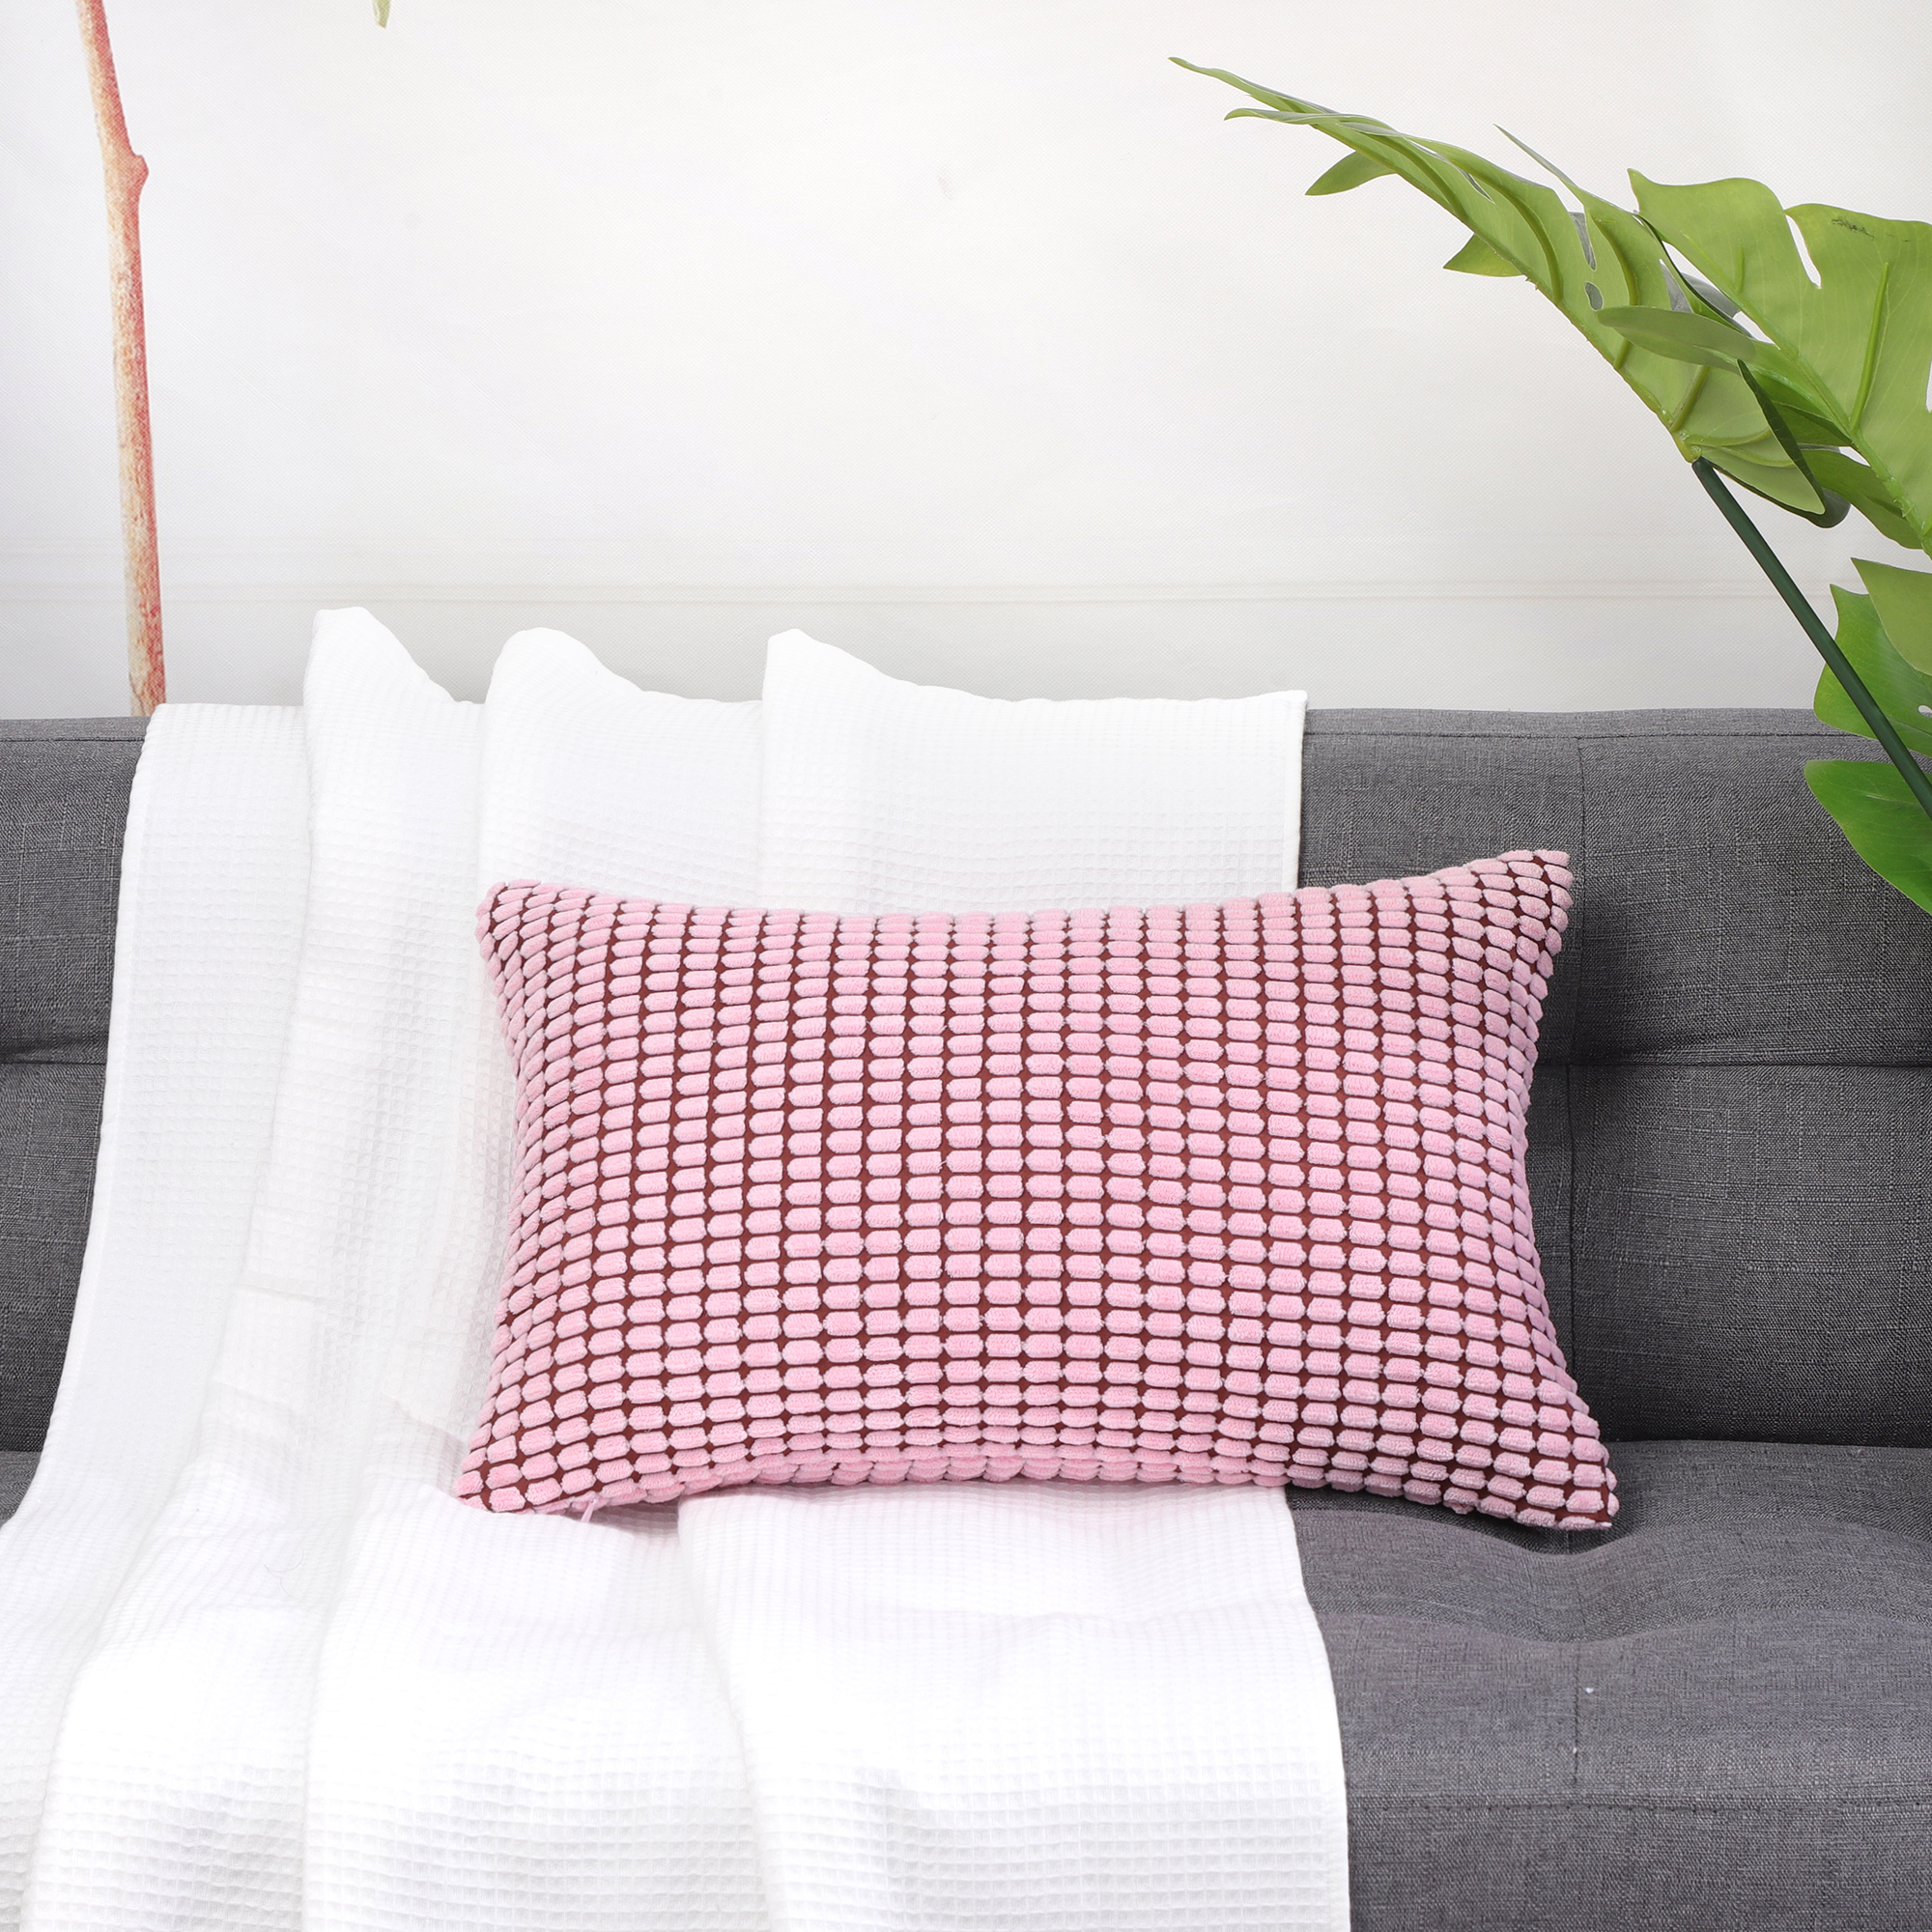 Rectangle-Pillow-Cases-Throw-Pillow-Cover-Christmas-Gift-Cushion-Cover-12-034-x-18-034 thumbnail 16